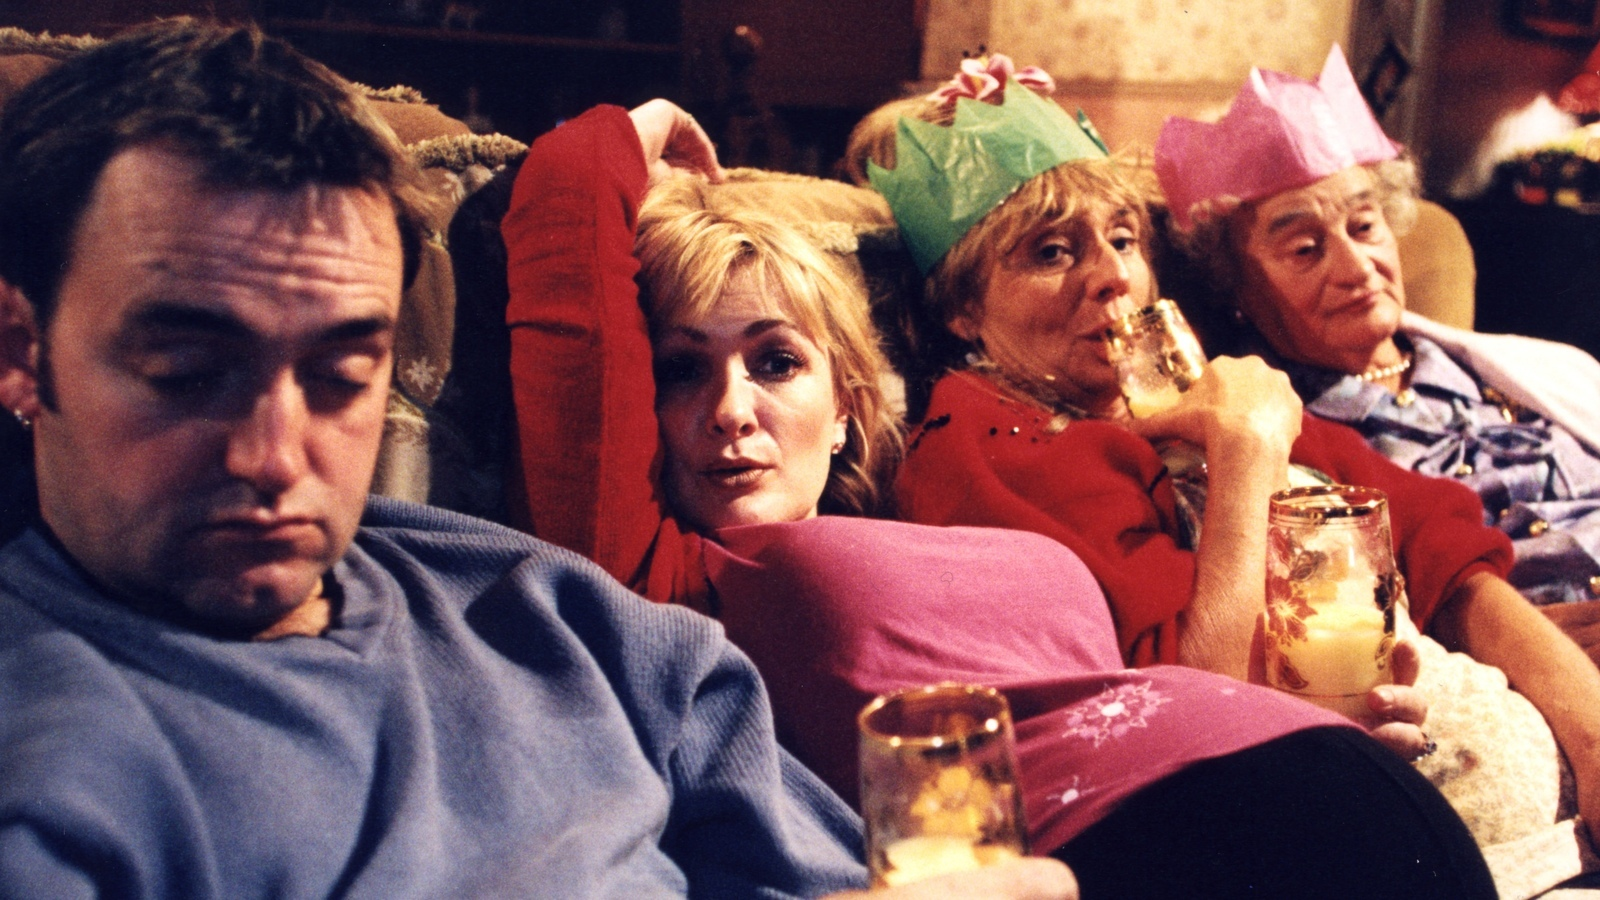 Royle family on sofa at Christmas